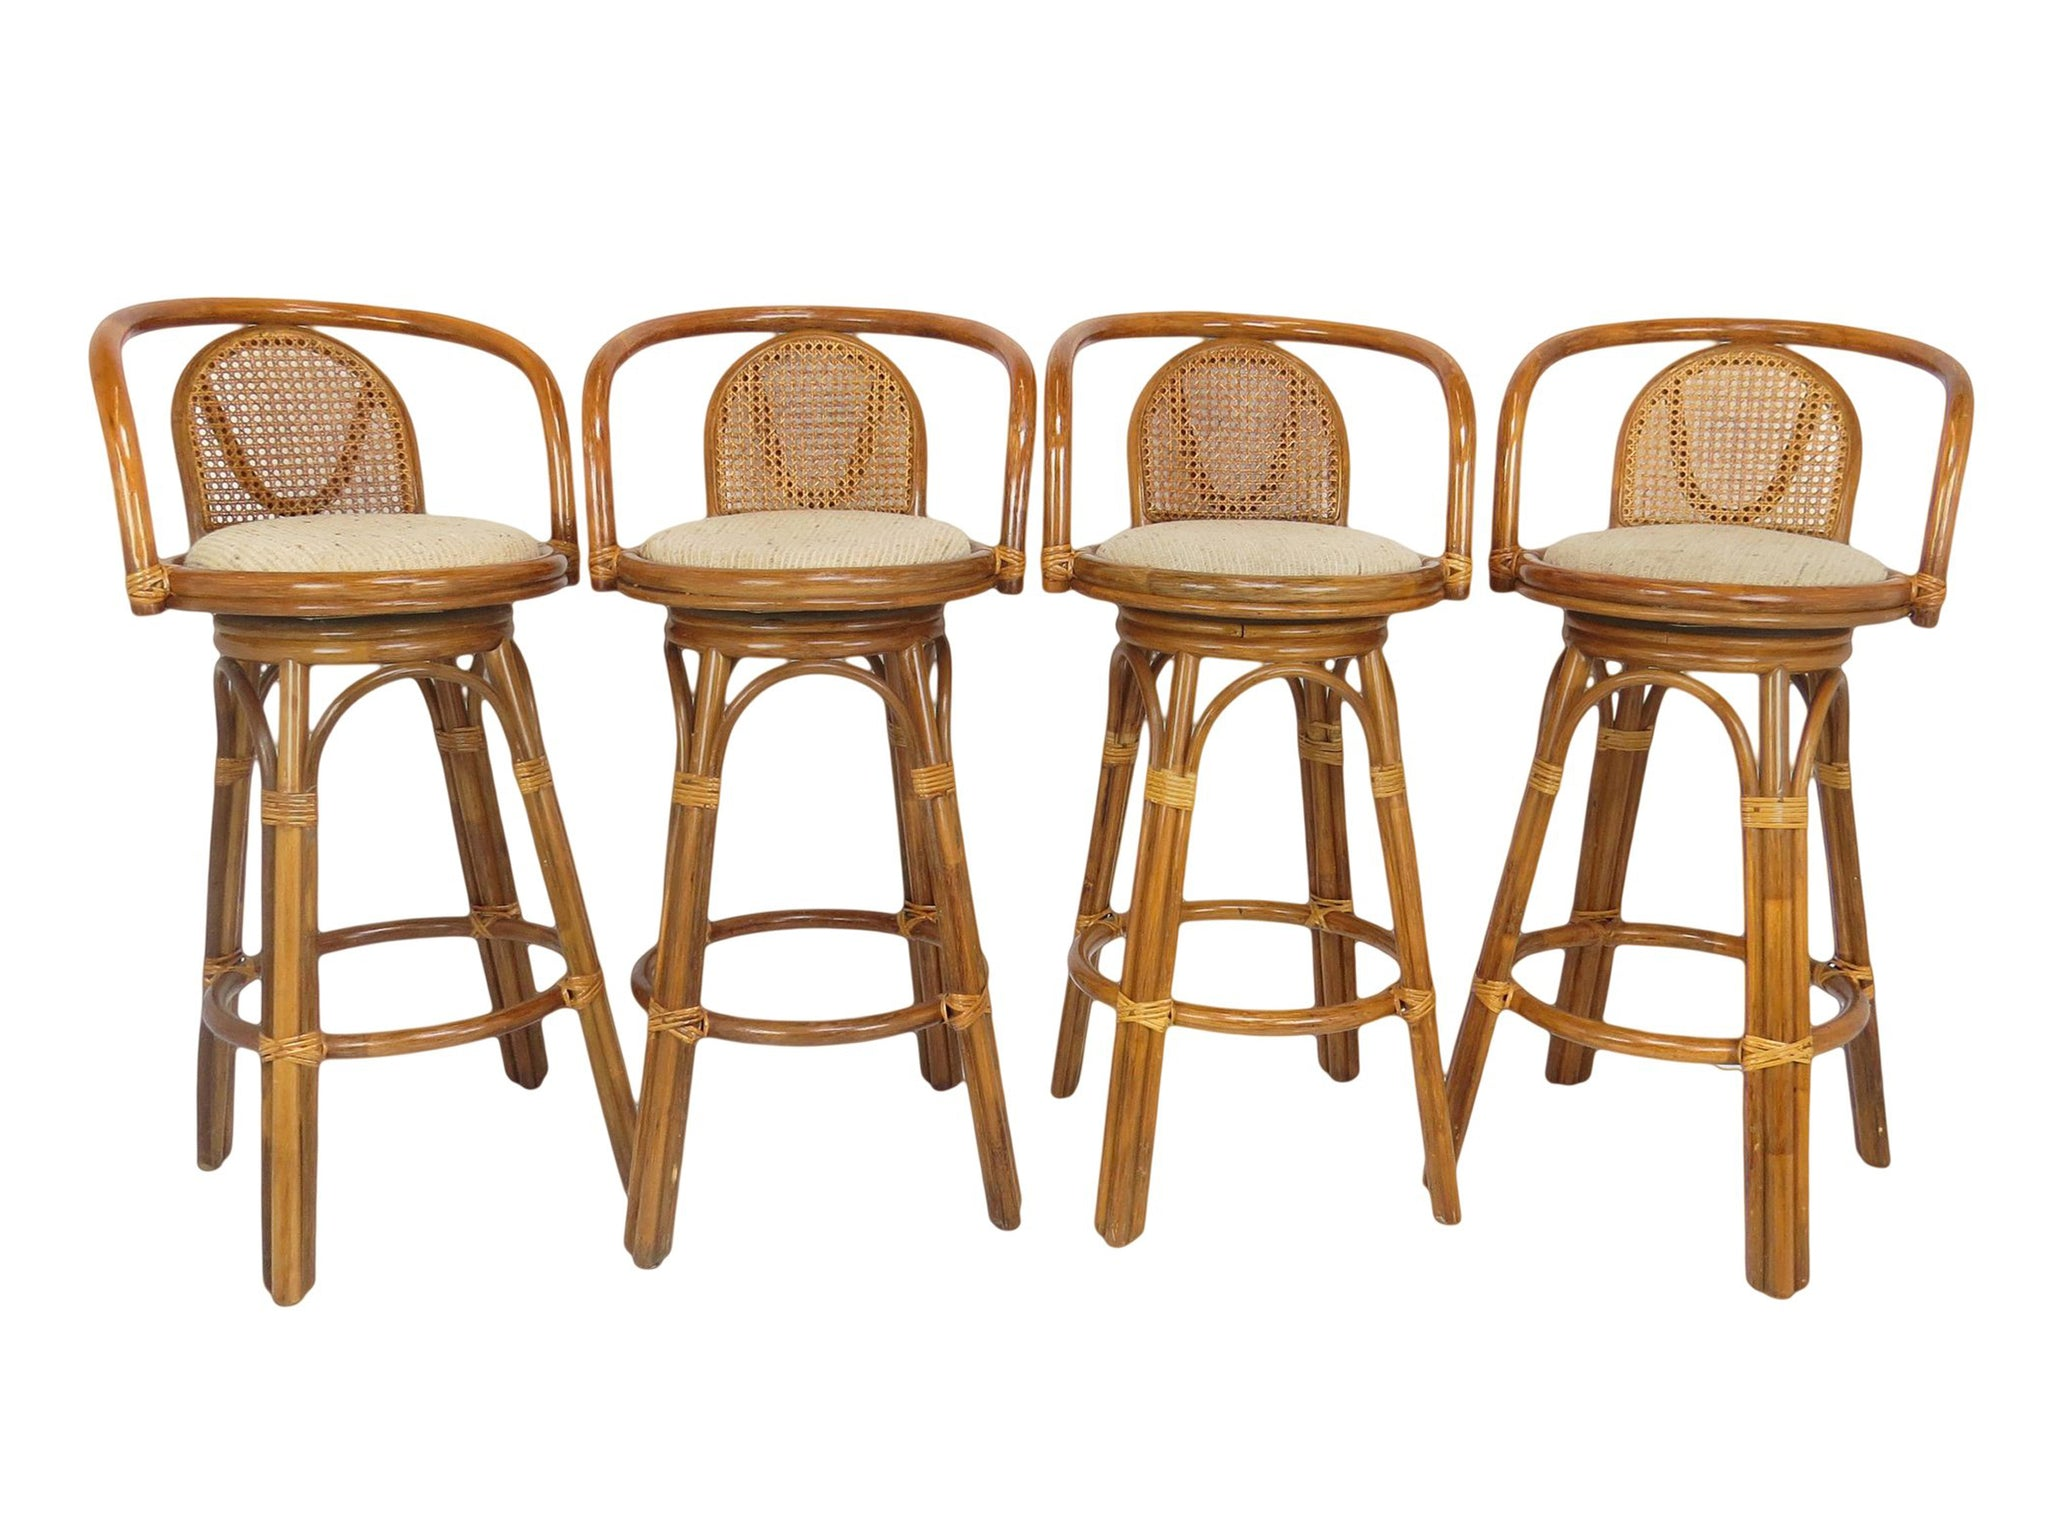 Picture of: 1970s Vintage Tiki Bamboo And Rattan Swivel Bar Stools Set Of 4 Edgebrookhouse